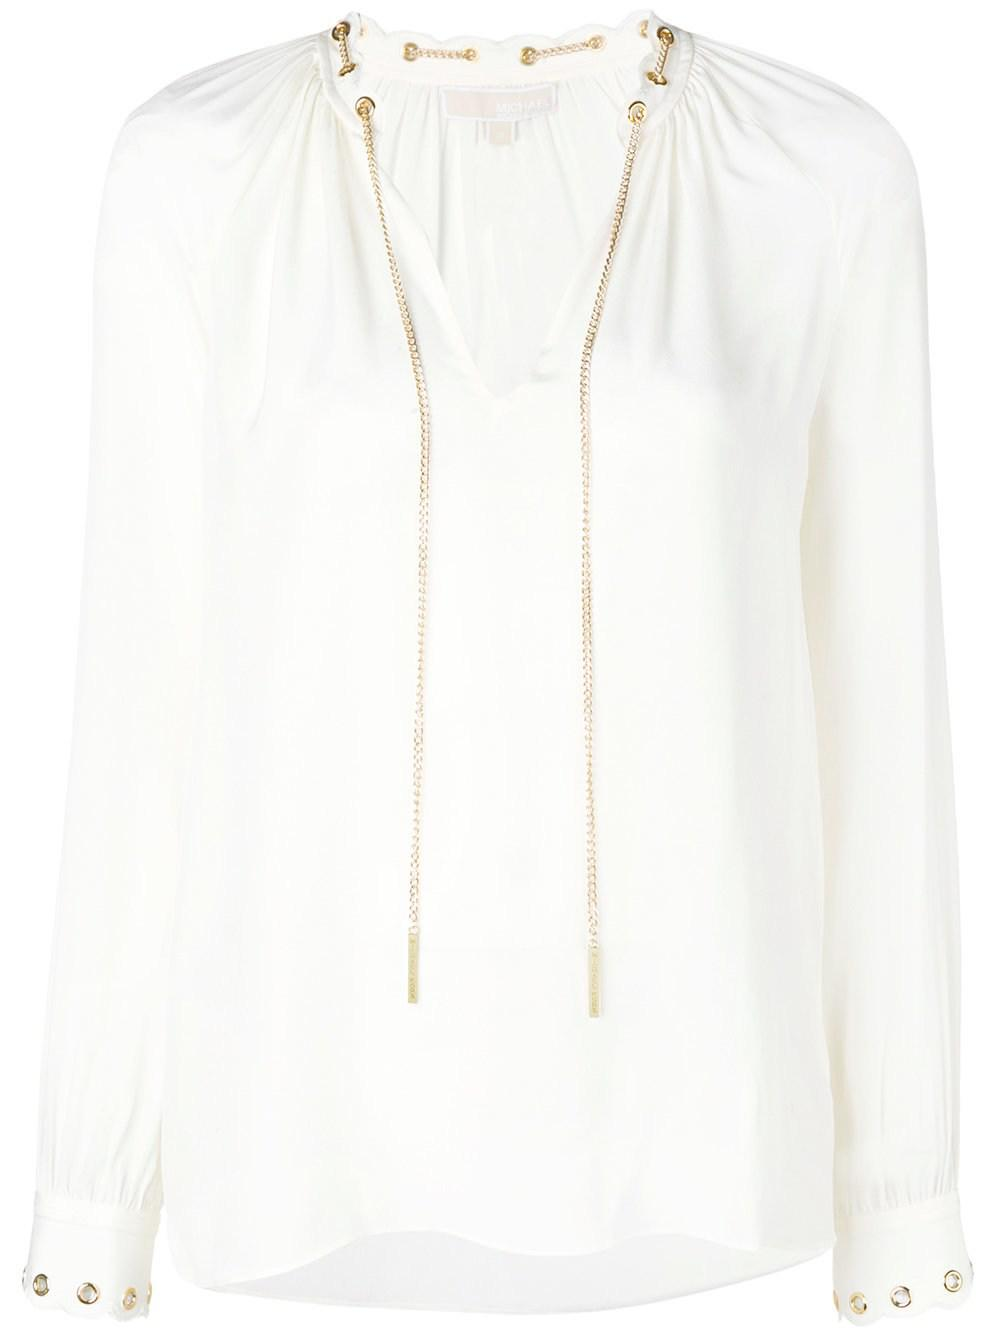 38203a5f6a076 MICHAEL Michael Kors Silk Top With Chain in White - Lyst